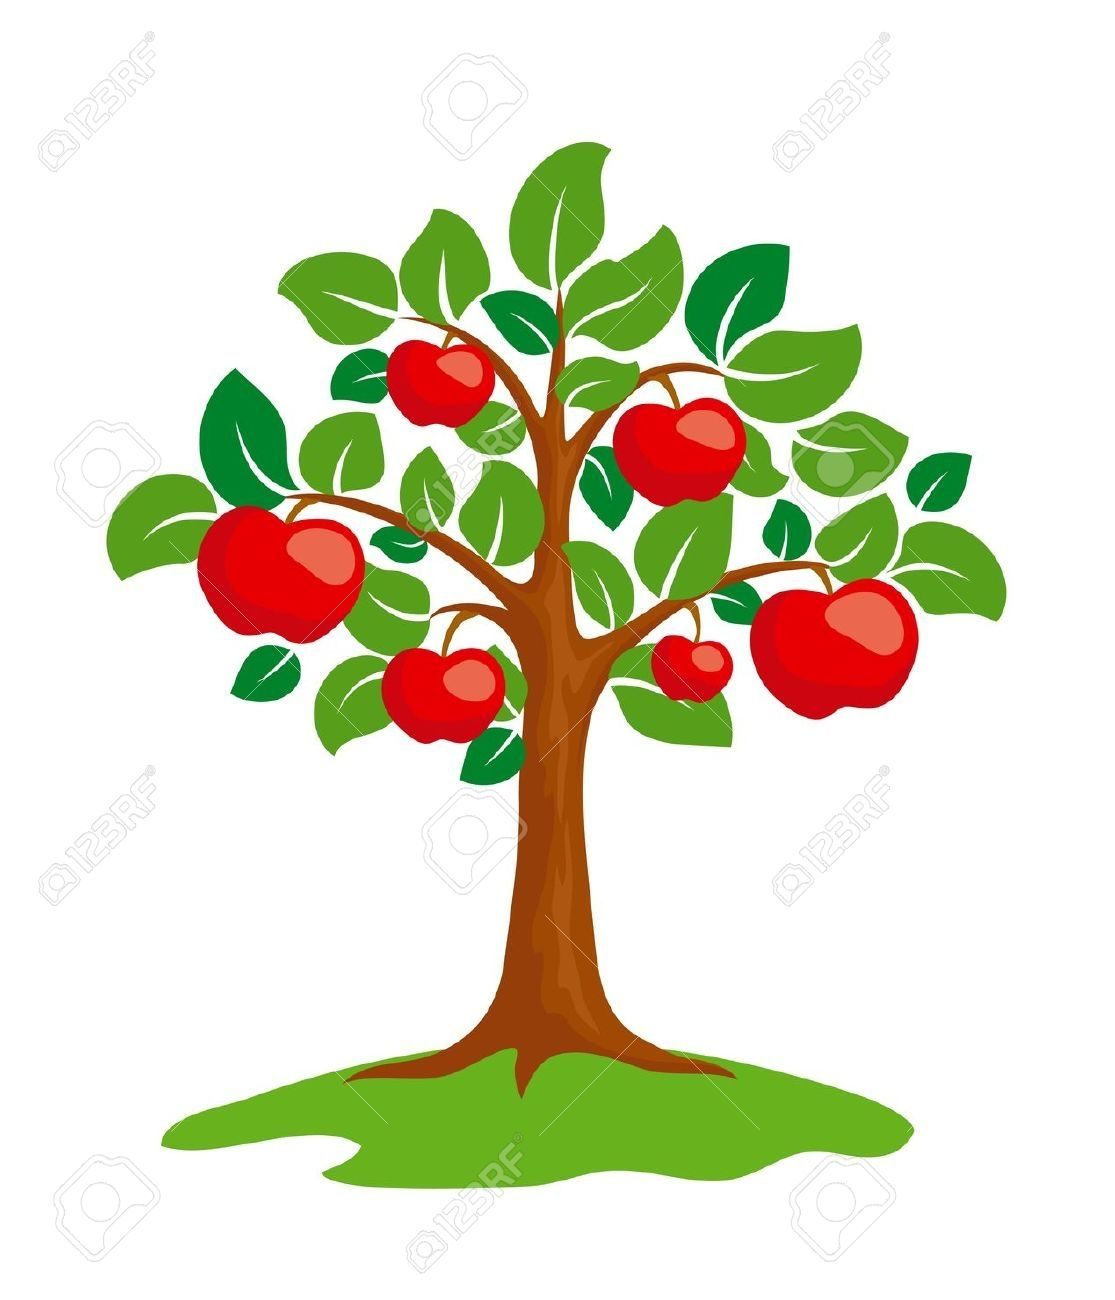 Clipart trees fruit. Pin by che saludes